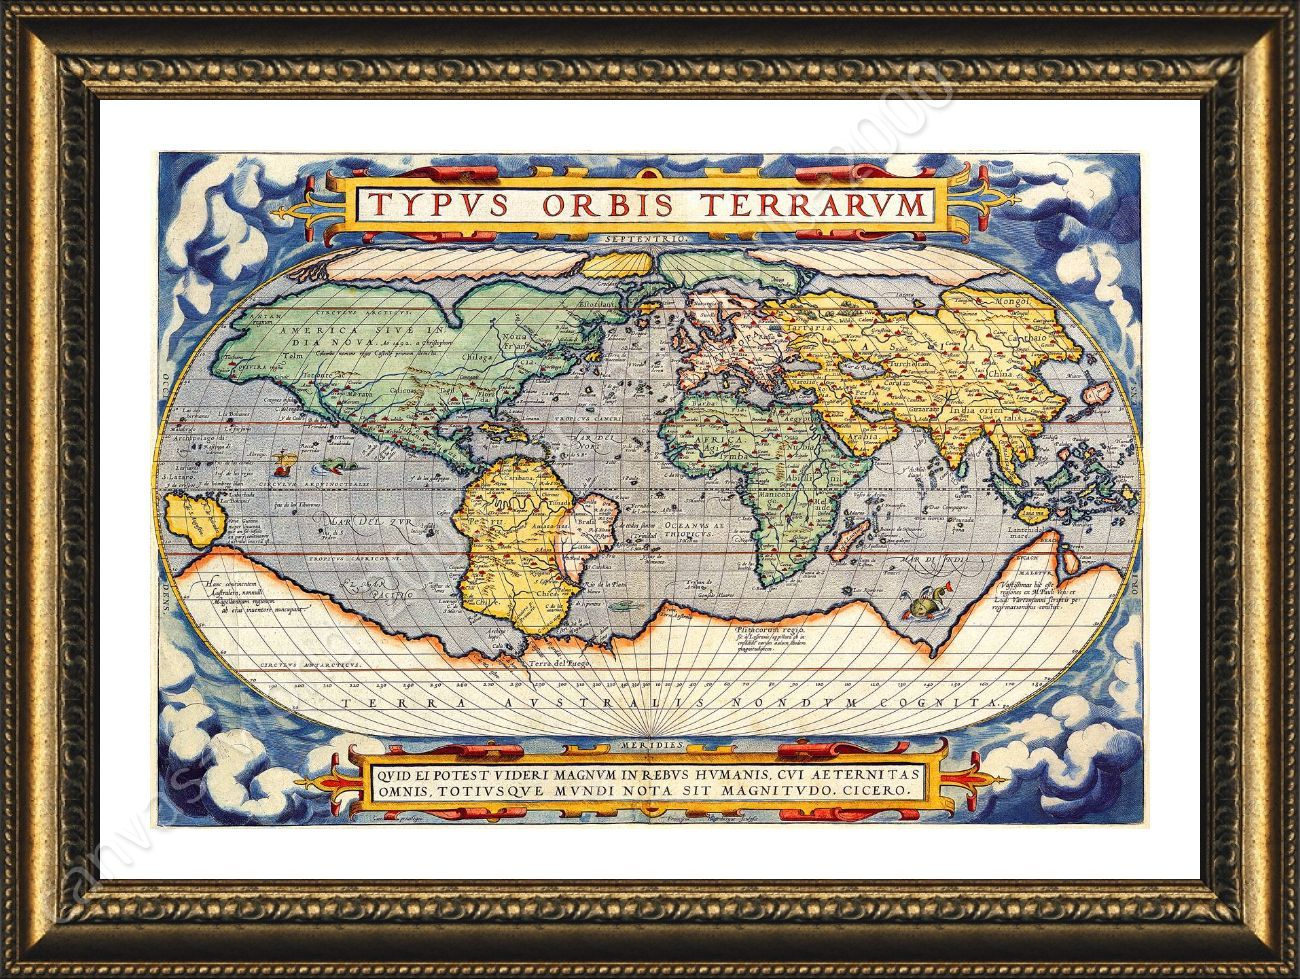 Pster enmarcado mapa antiguo mundo antiguo vintage v3 arte framed poster antique old vintage v3 world map framed art framed wall decor gumiabroncs Choice Image